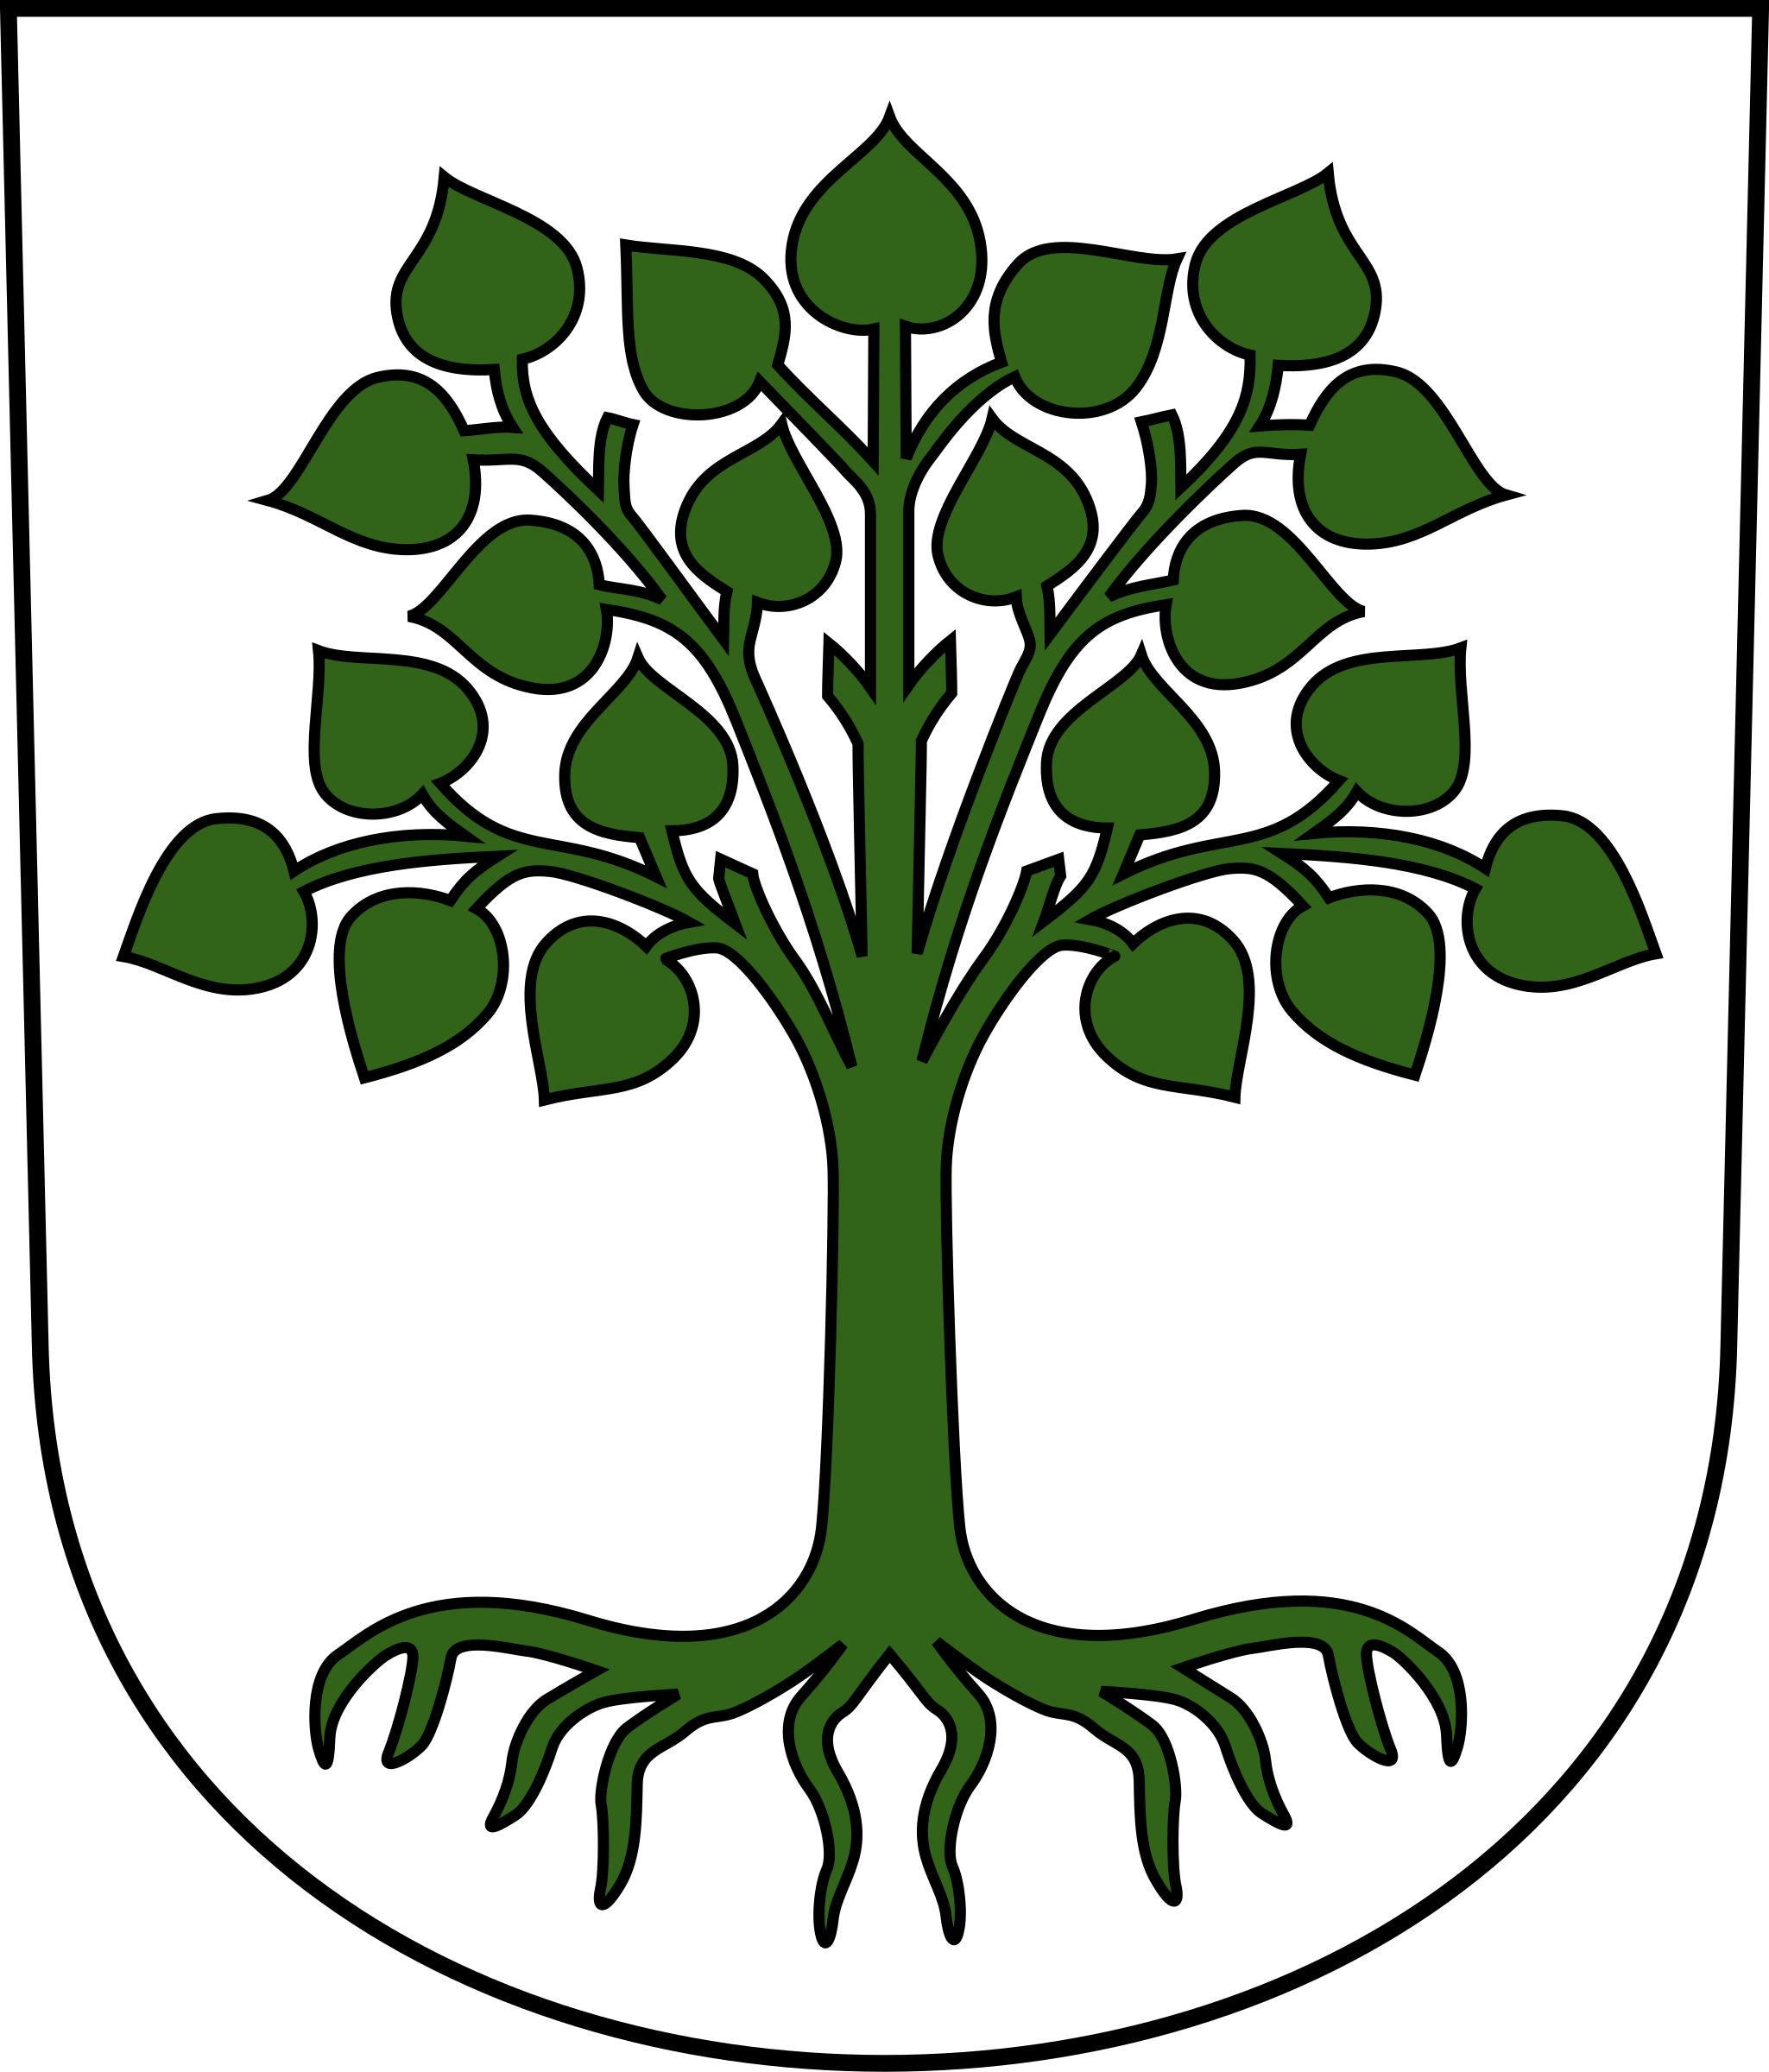 Lindau - Coat of arms 2 by wipp